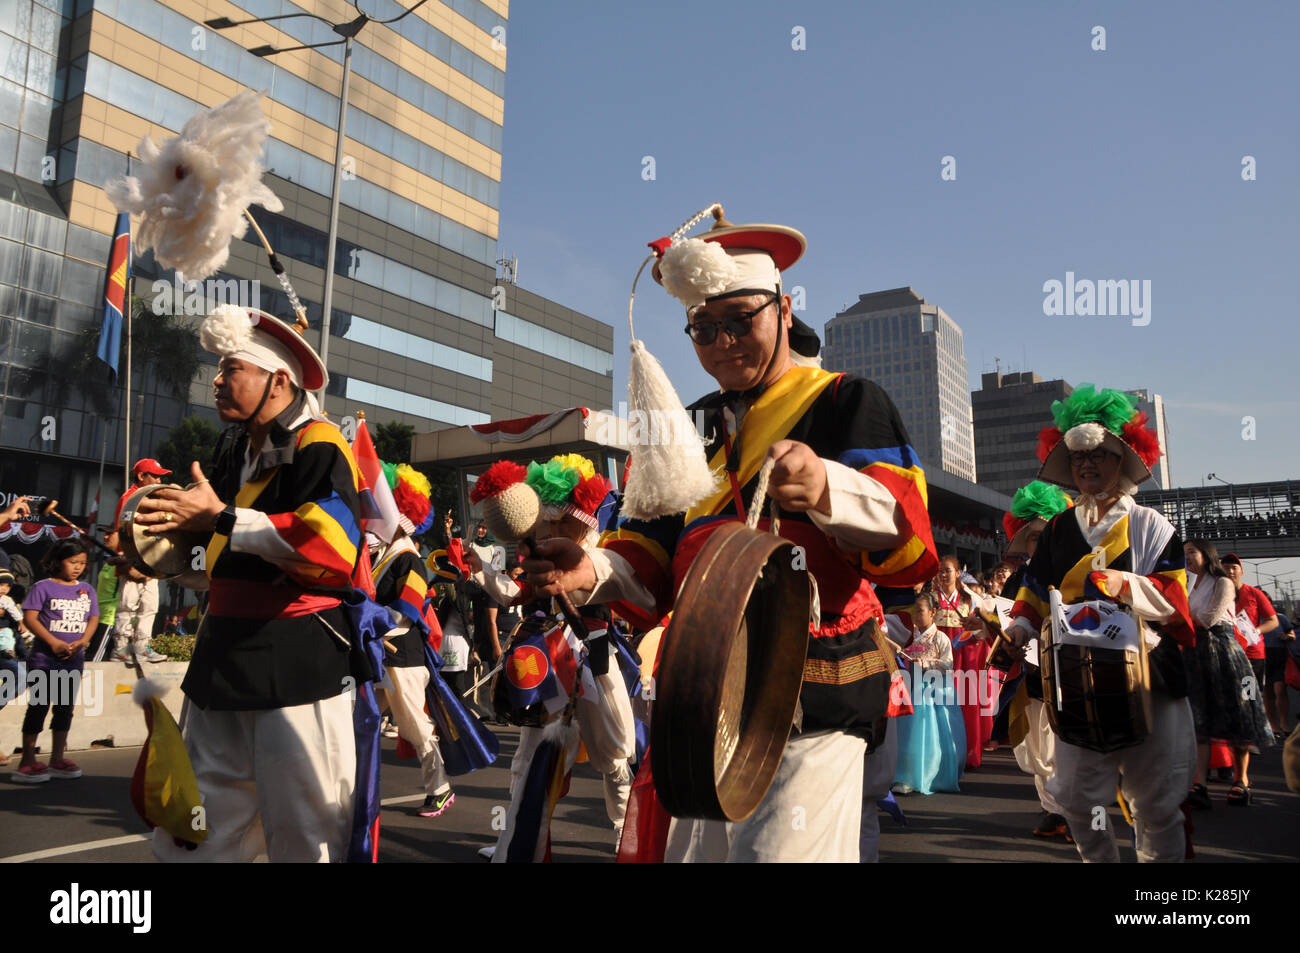 ASEAN Parade in Jakarta Indonesia - Stock Image